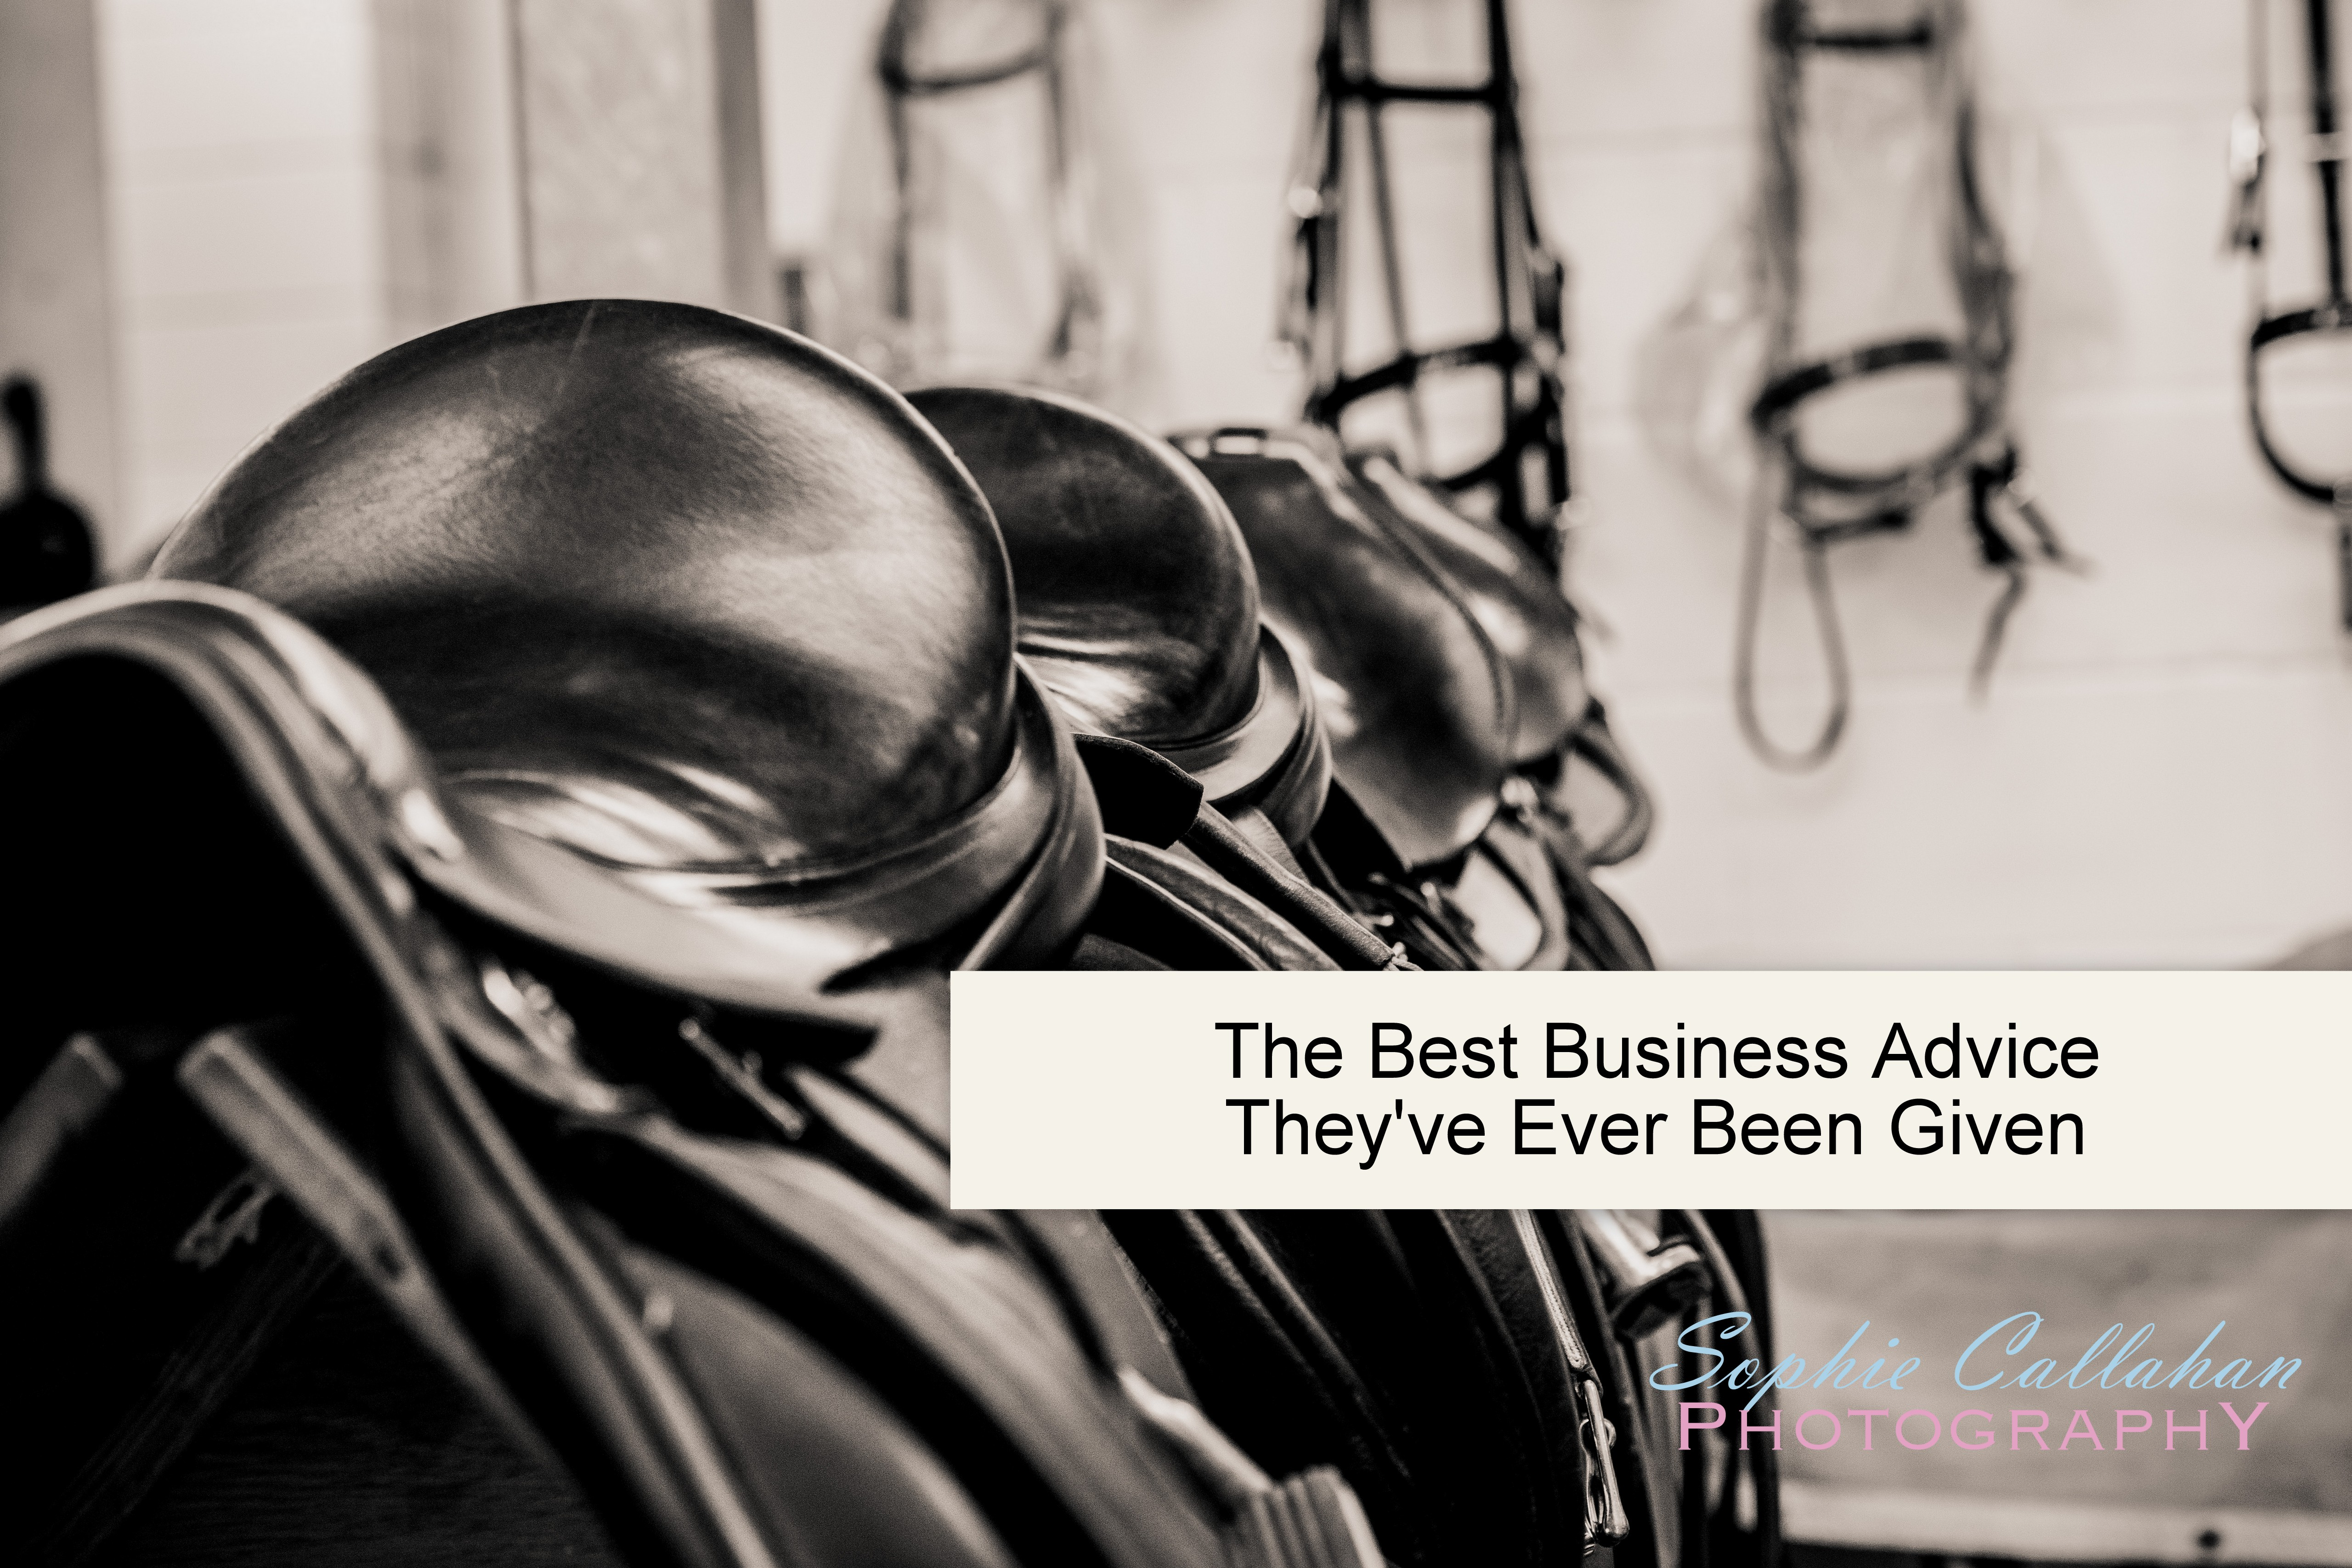 The Best Business Advice They've Ever Been Given I via sophiecallahanblog.com I #equinephotography #photography #equineblogger